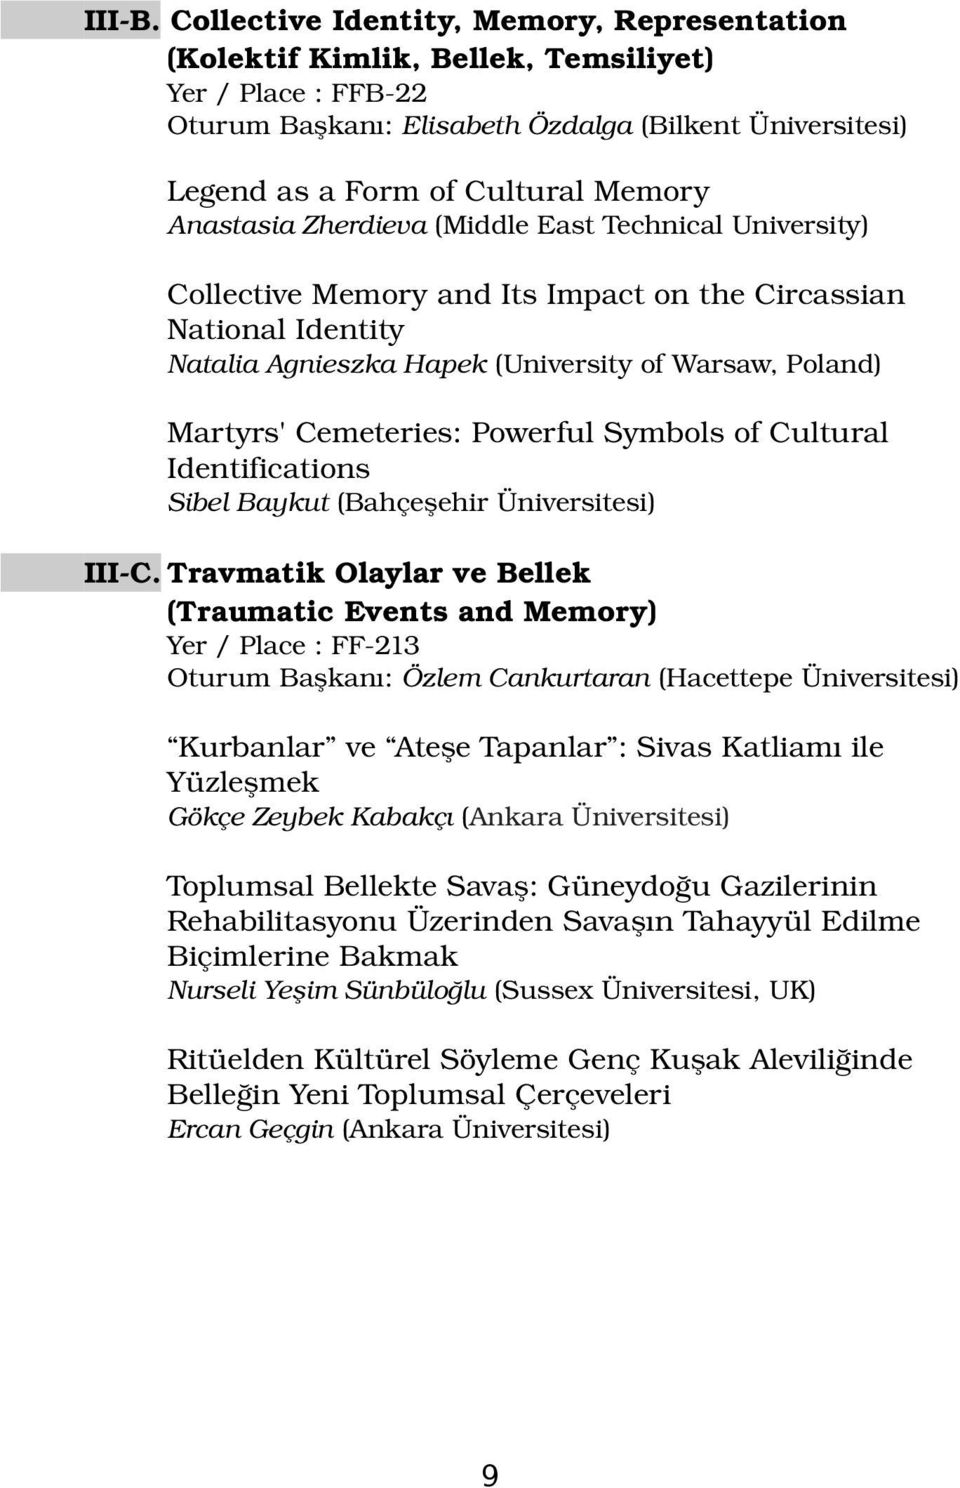 Anastasia Zherdieva (Middle East Technical University) Collective Memory and Its Impact on the Circassian National Identity Natalia Agnieszka Hapek (University of Warsaw, Poland) Martyrs' Cemeteries: